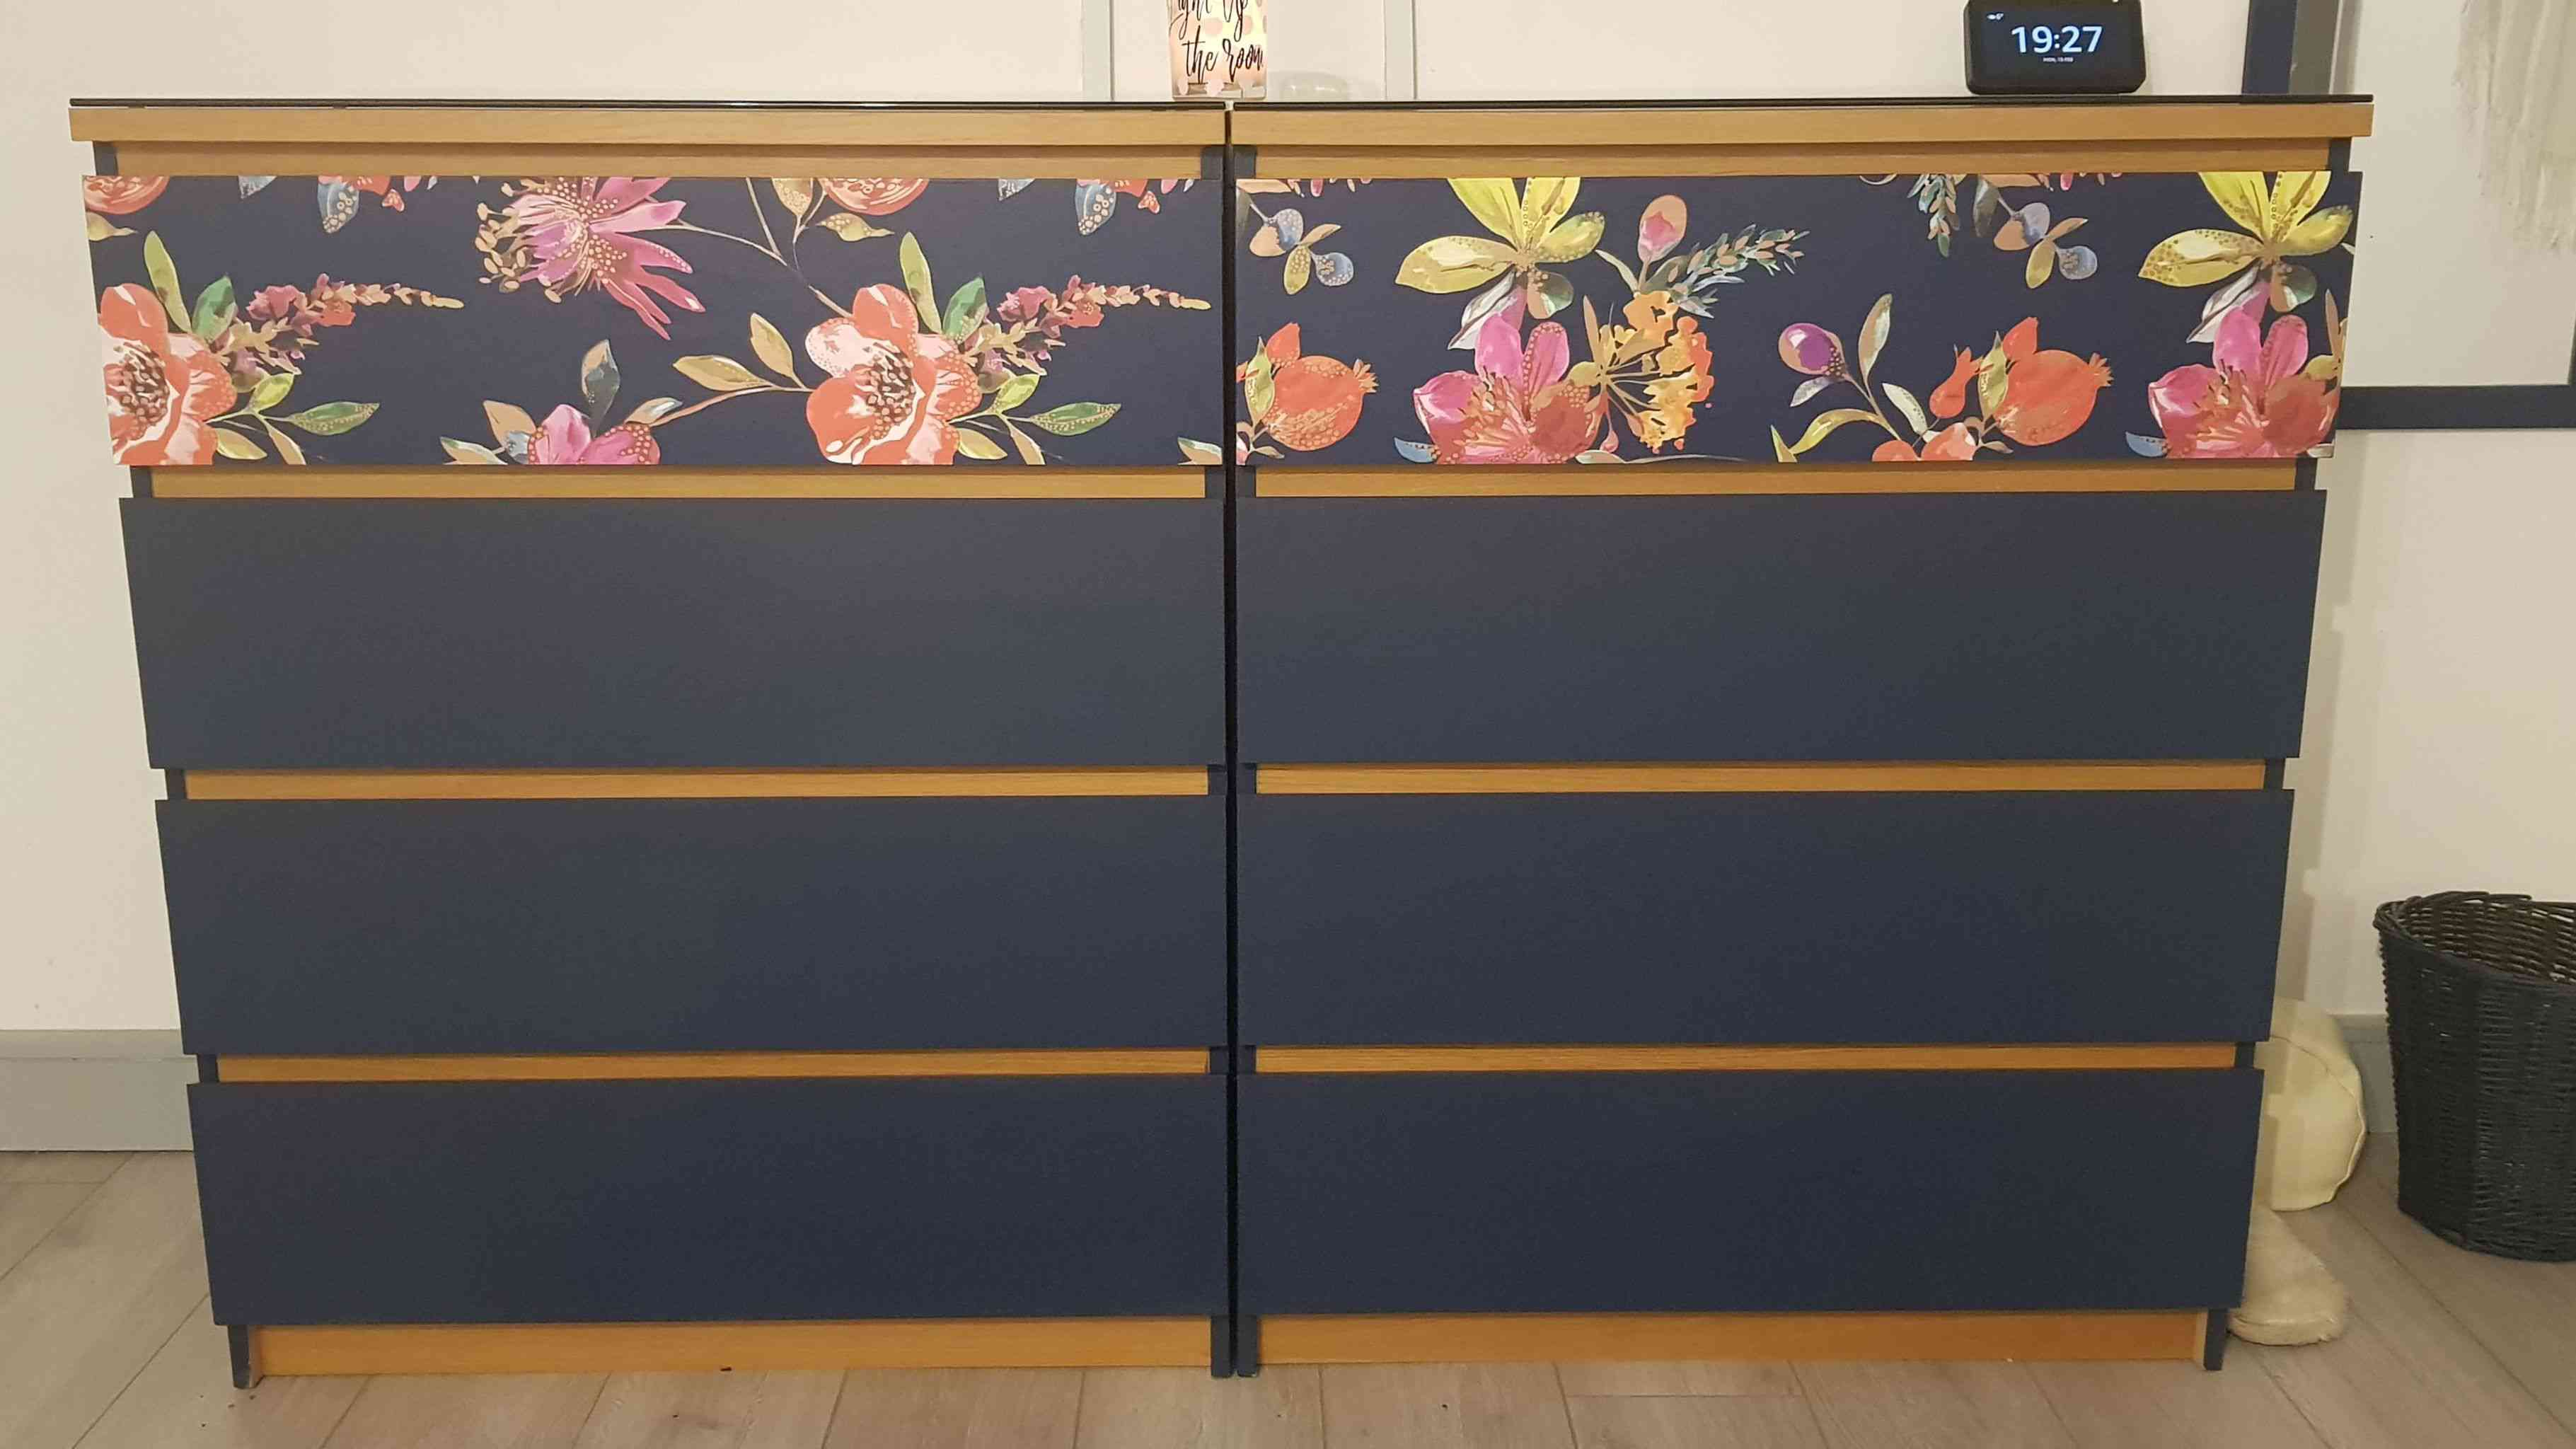 Two IKEA Malm dressers painted navy and gold